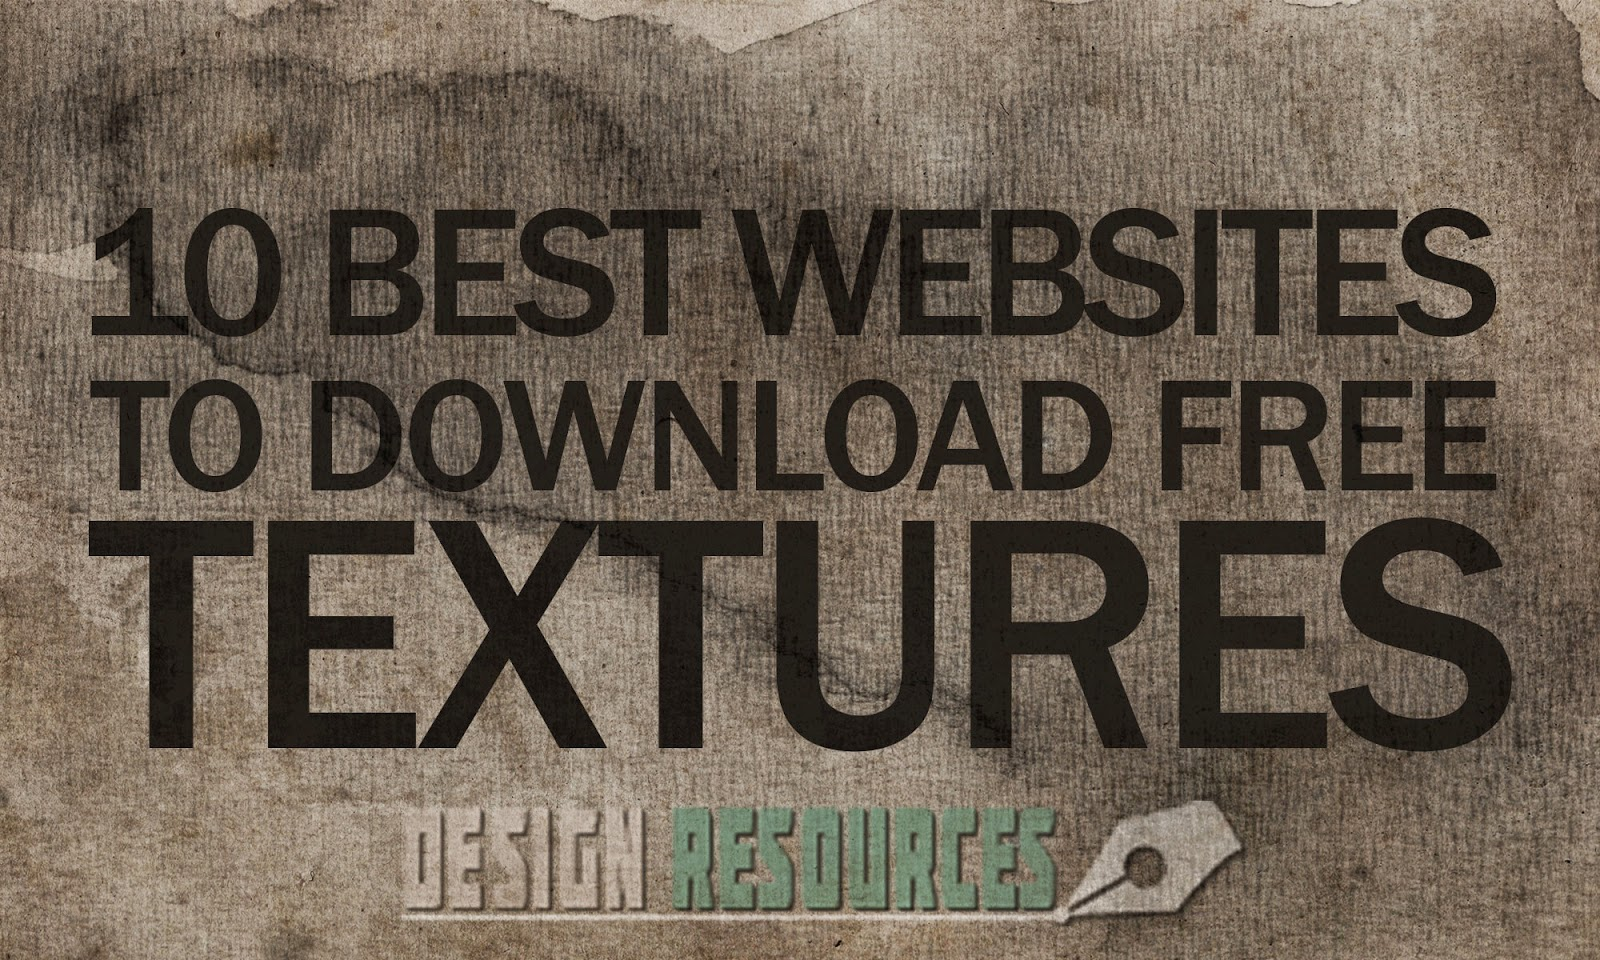 10 Best Websites to Download Free High Quality Textures